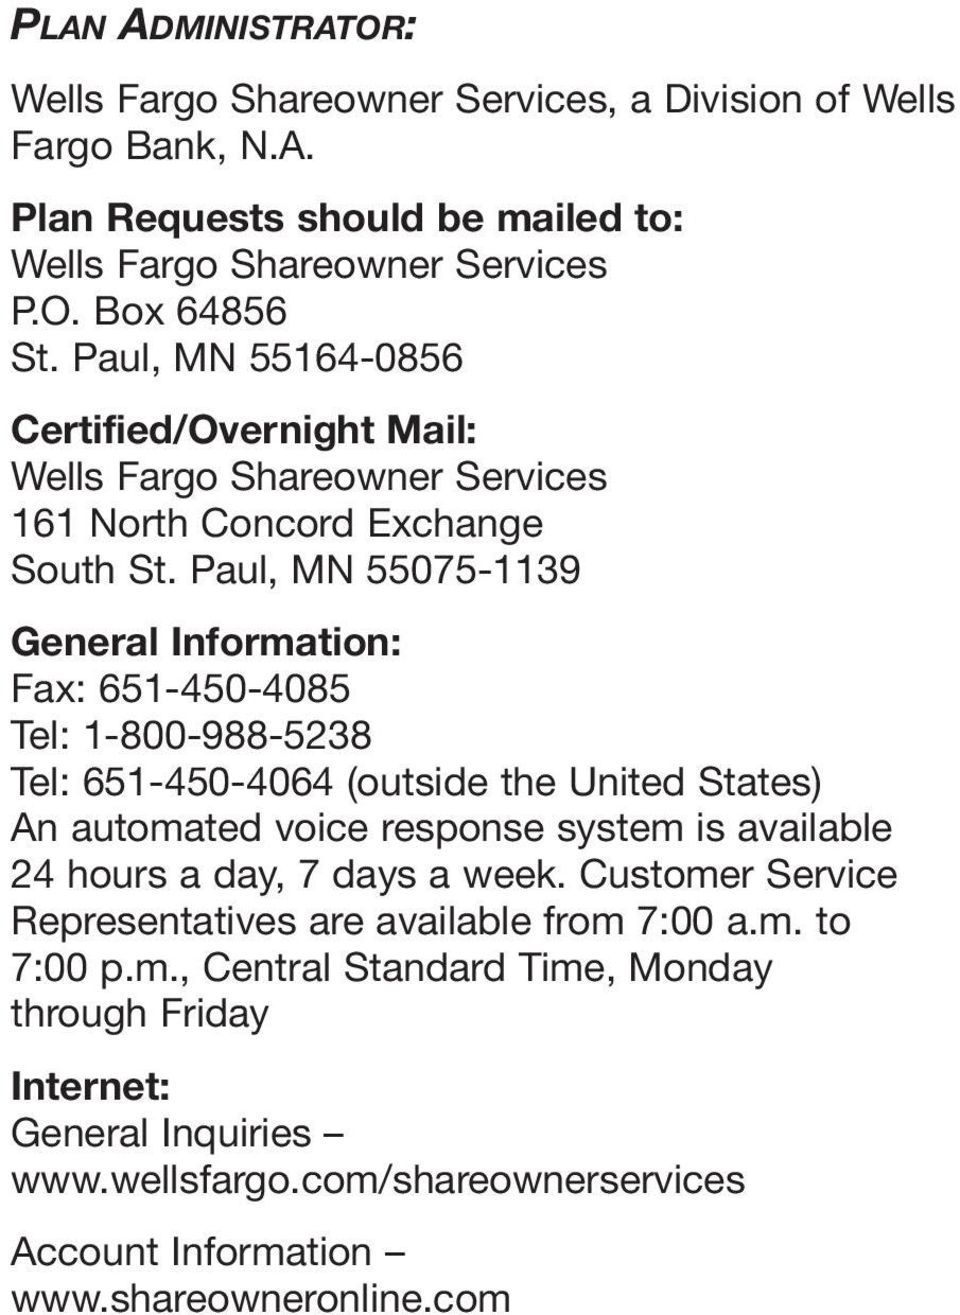 Paul, MN 55075-1139 General Information: Fax: 651-450-4085 Tel: 1-800-988-5238 Tel: 651-450-4064 (outside the United States) An automated voice response system is available 24 hours